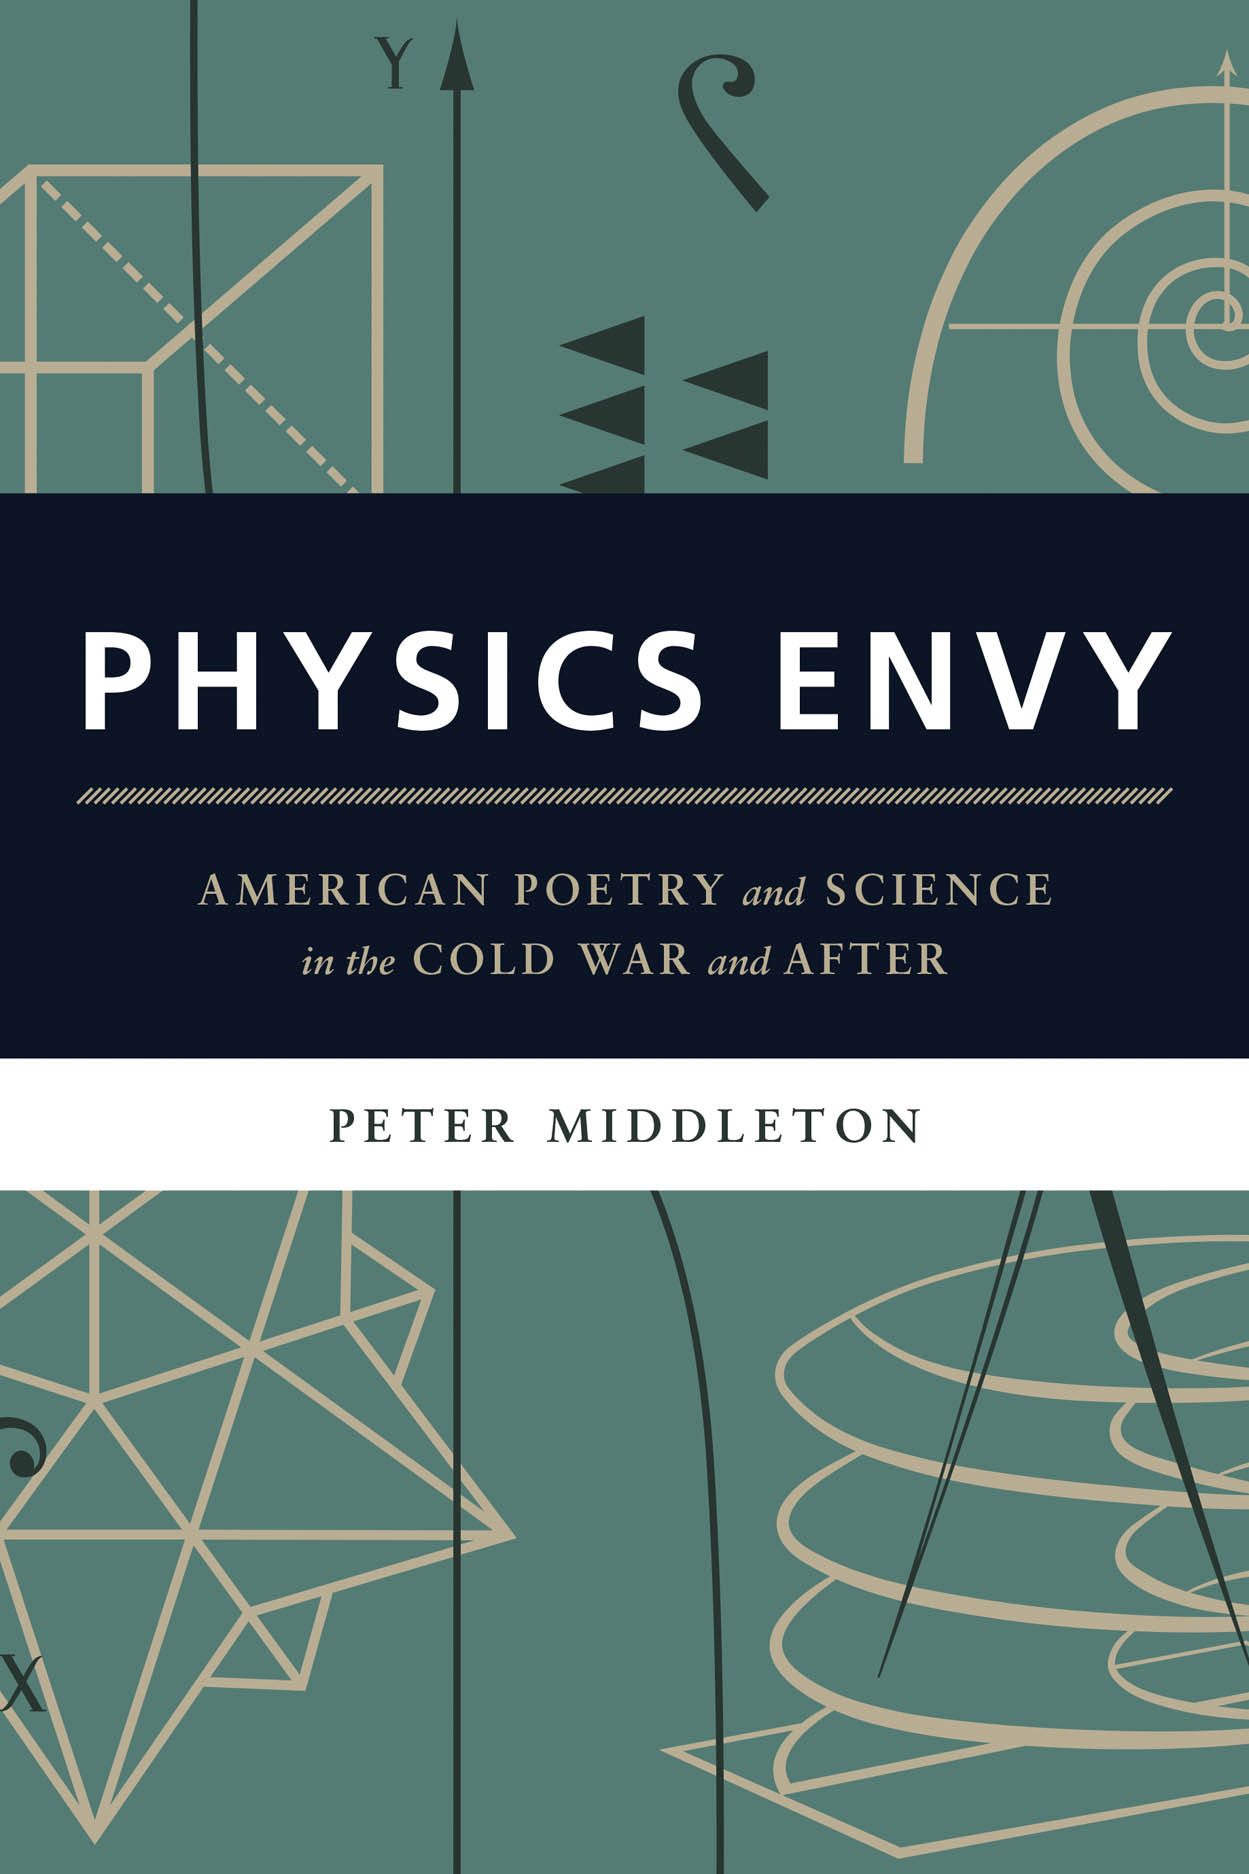 Physics Envy: American Poetry and Science in the Cold War and After